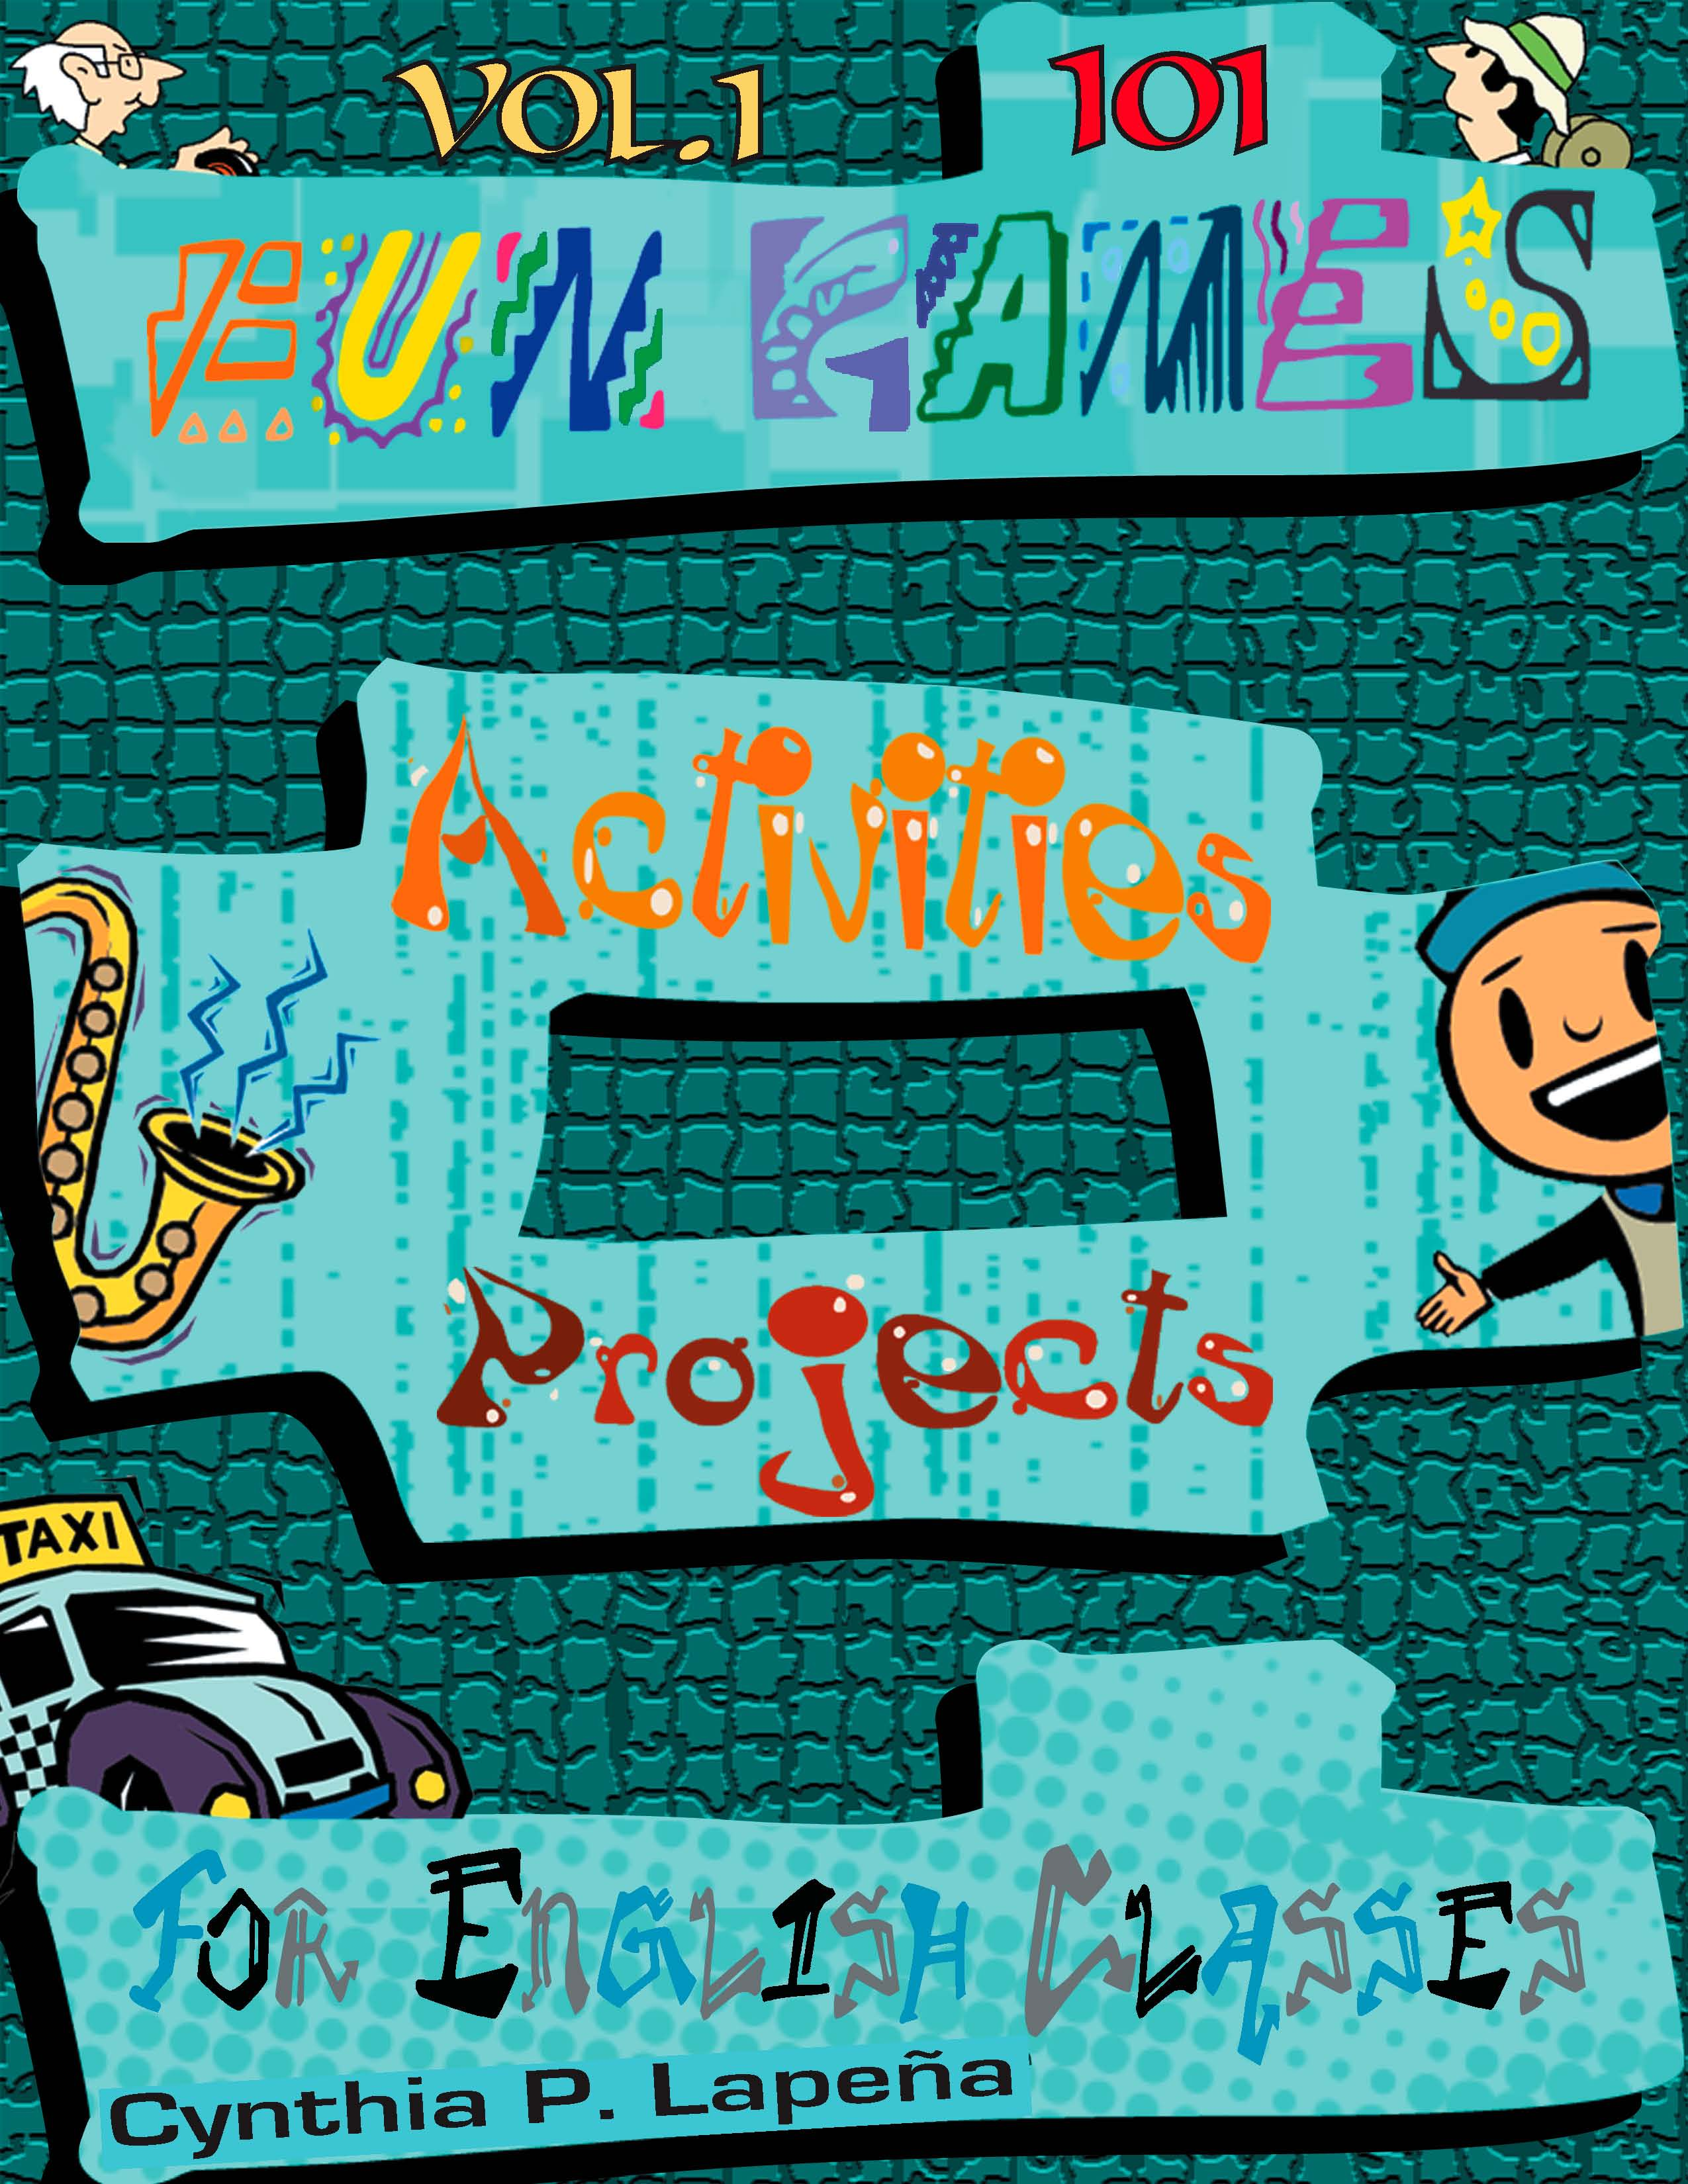 101 fun games activities and projects for english classes cindy